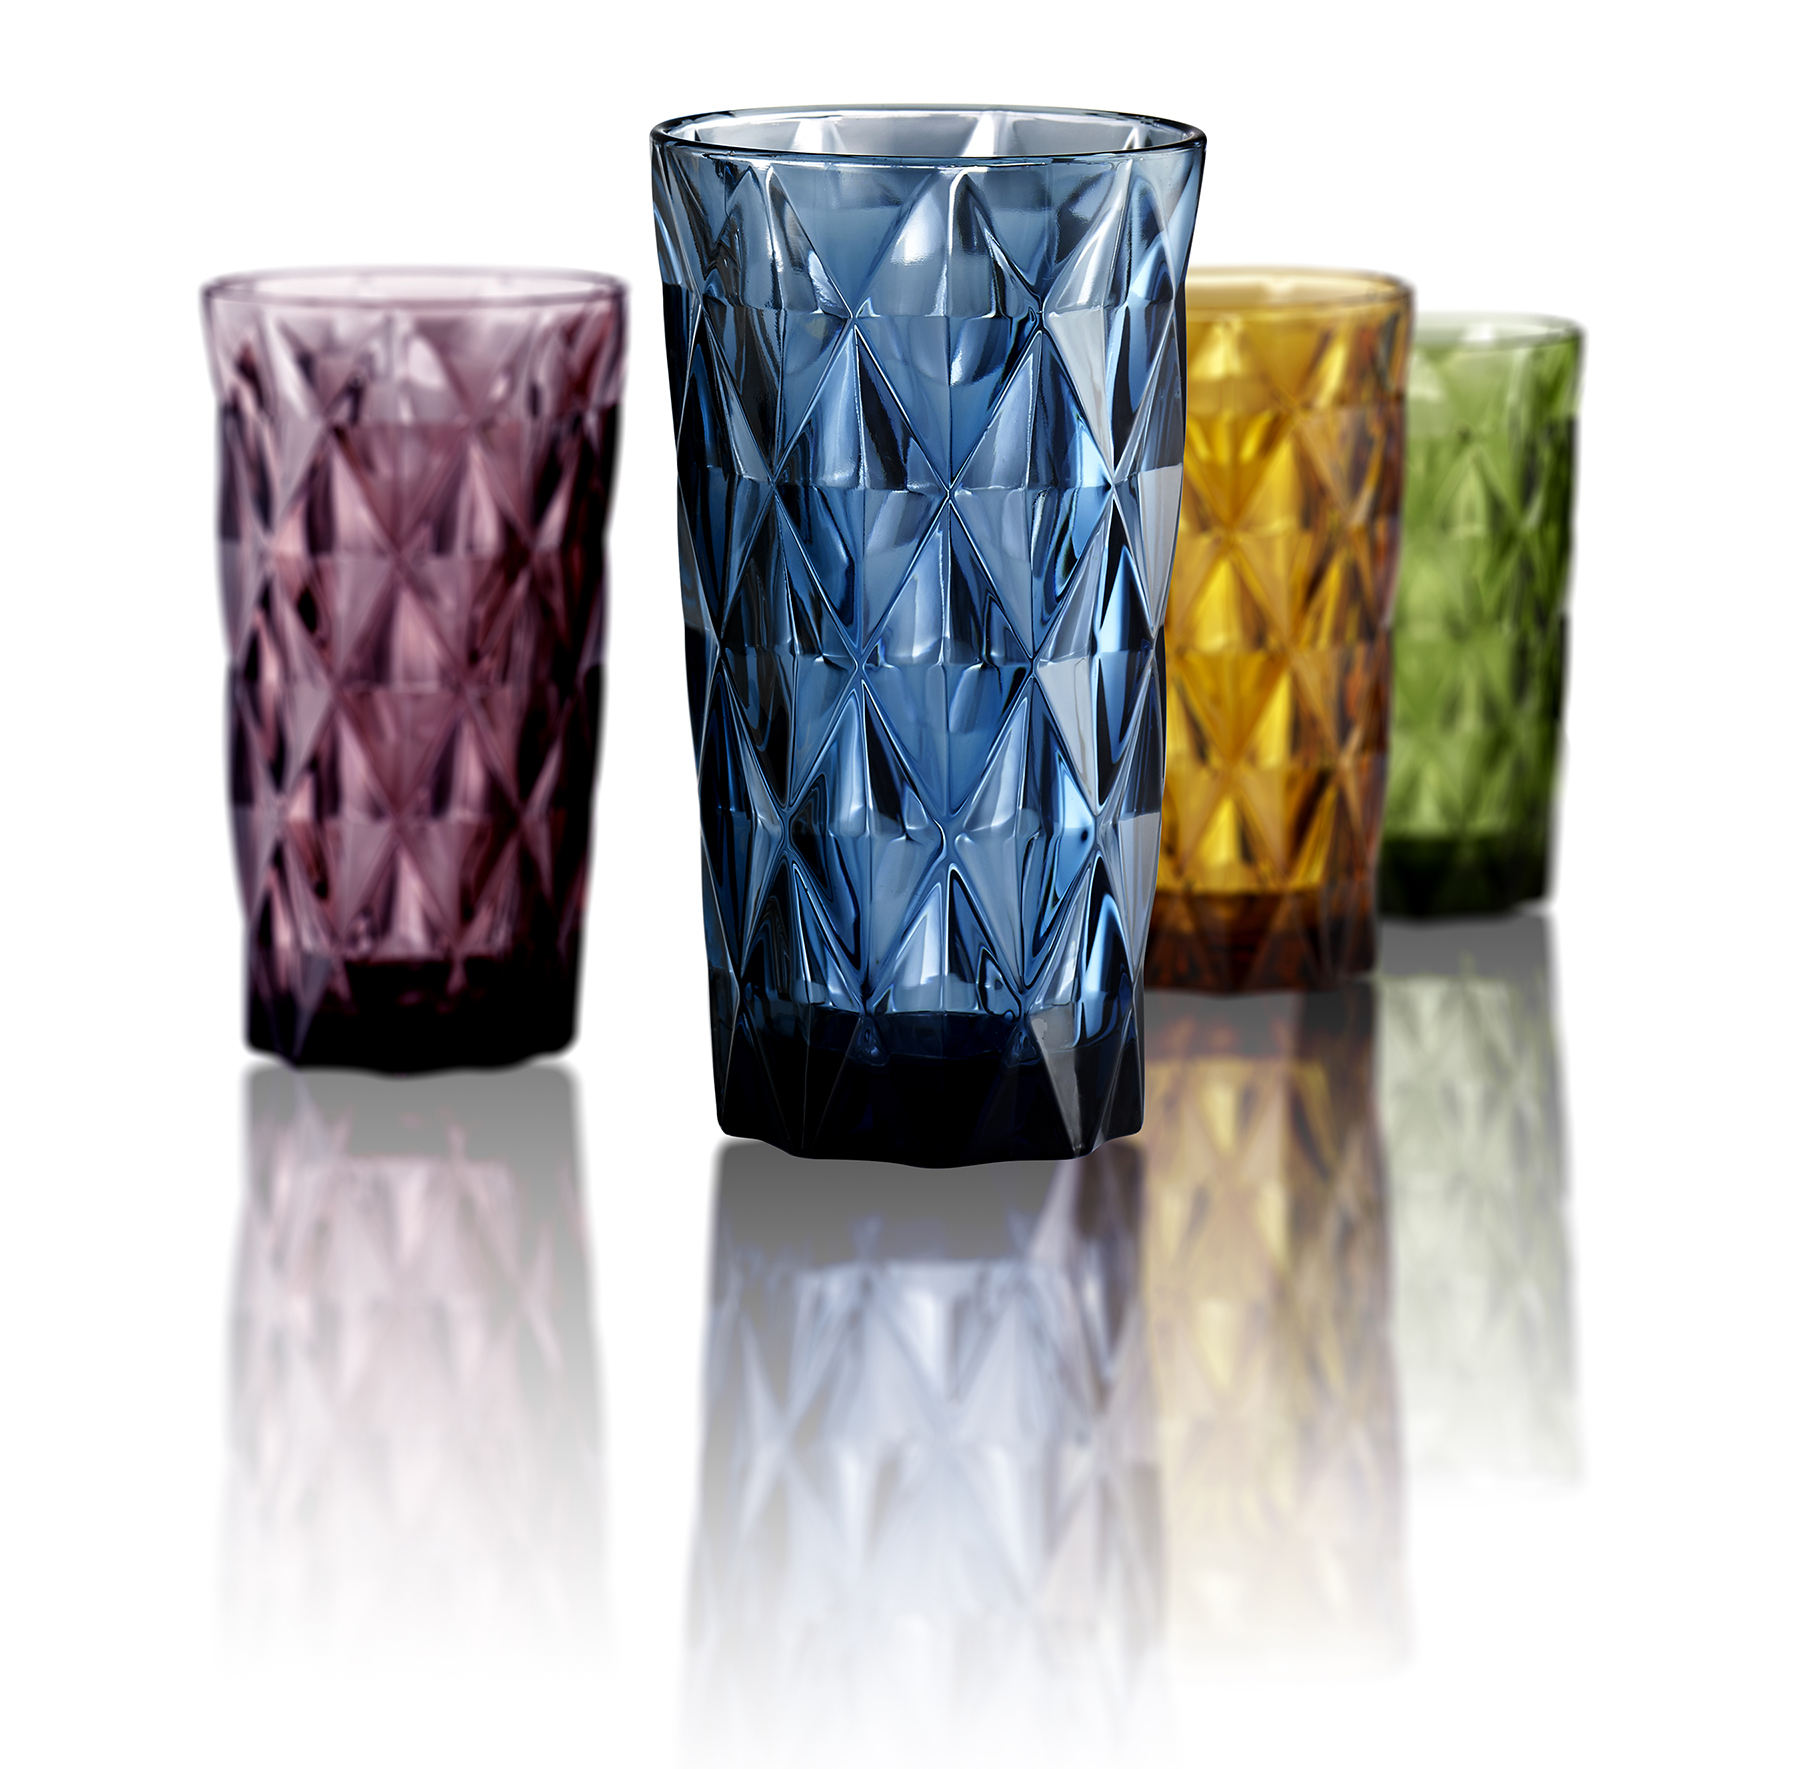 Artland Highgate 15oz Glasses, Set of 4, Assorted Color (Blue, Green, Purple, Amber)